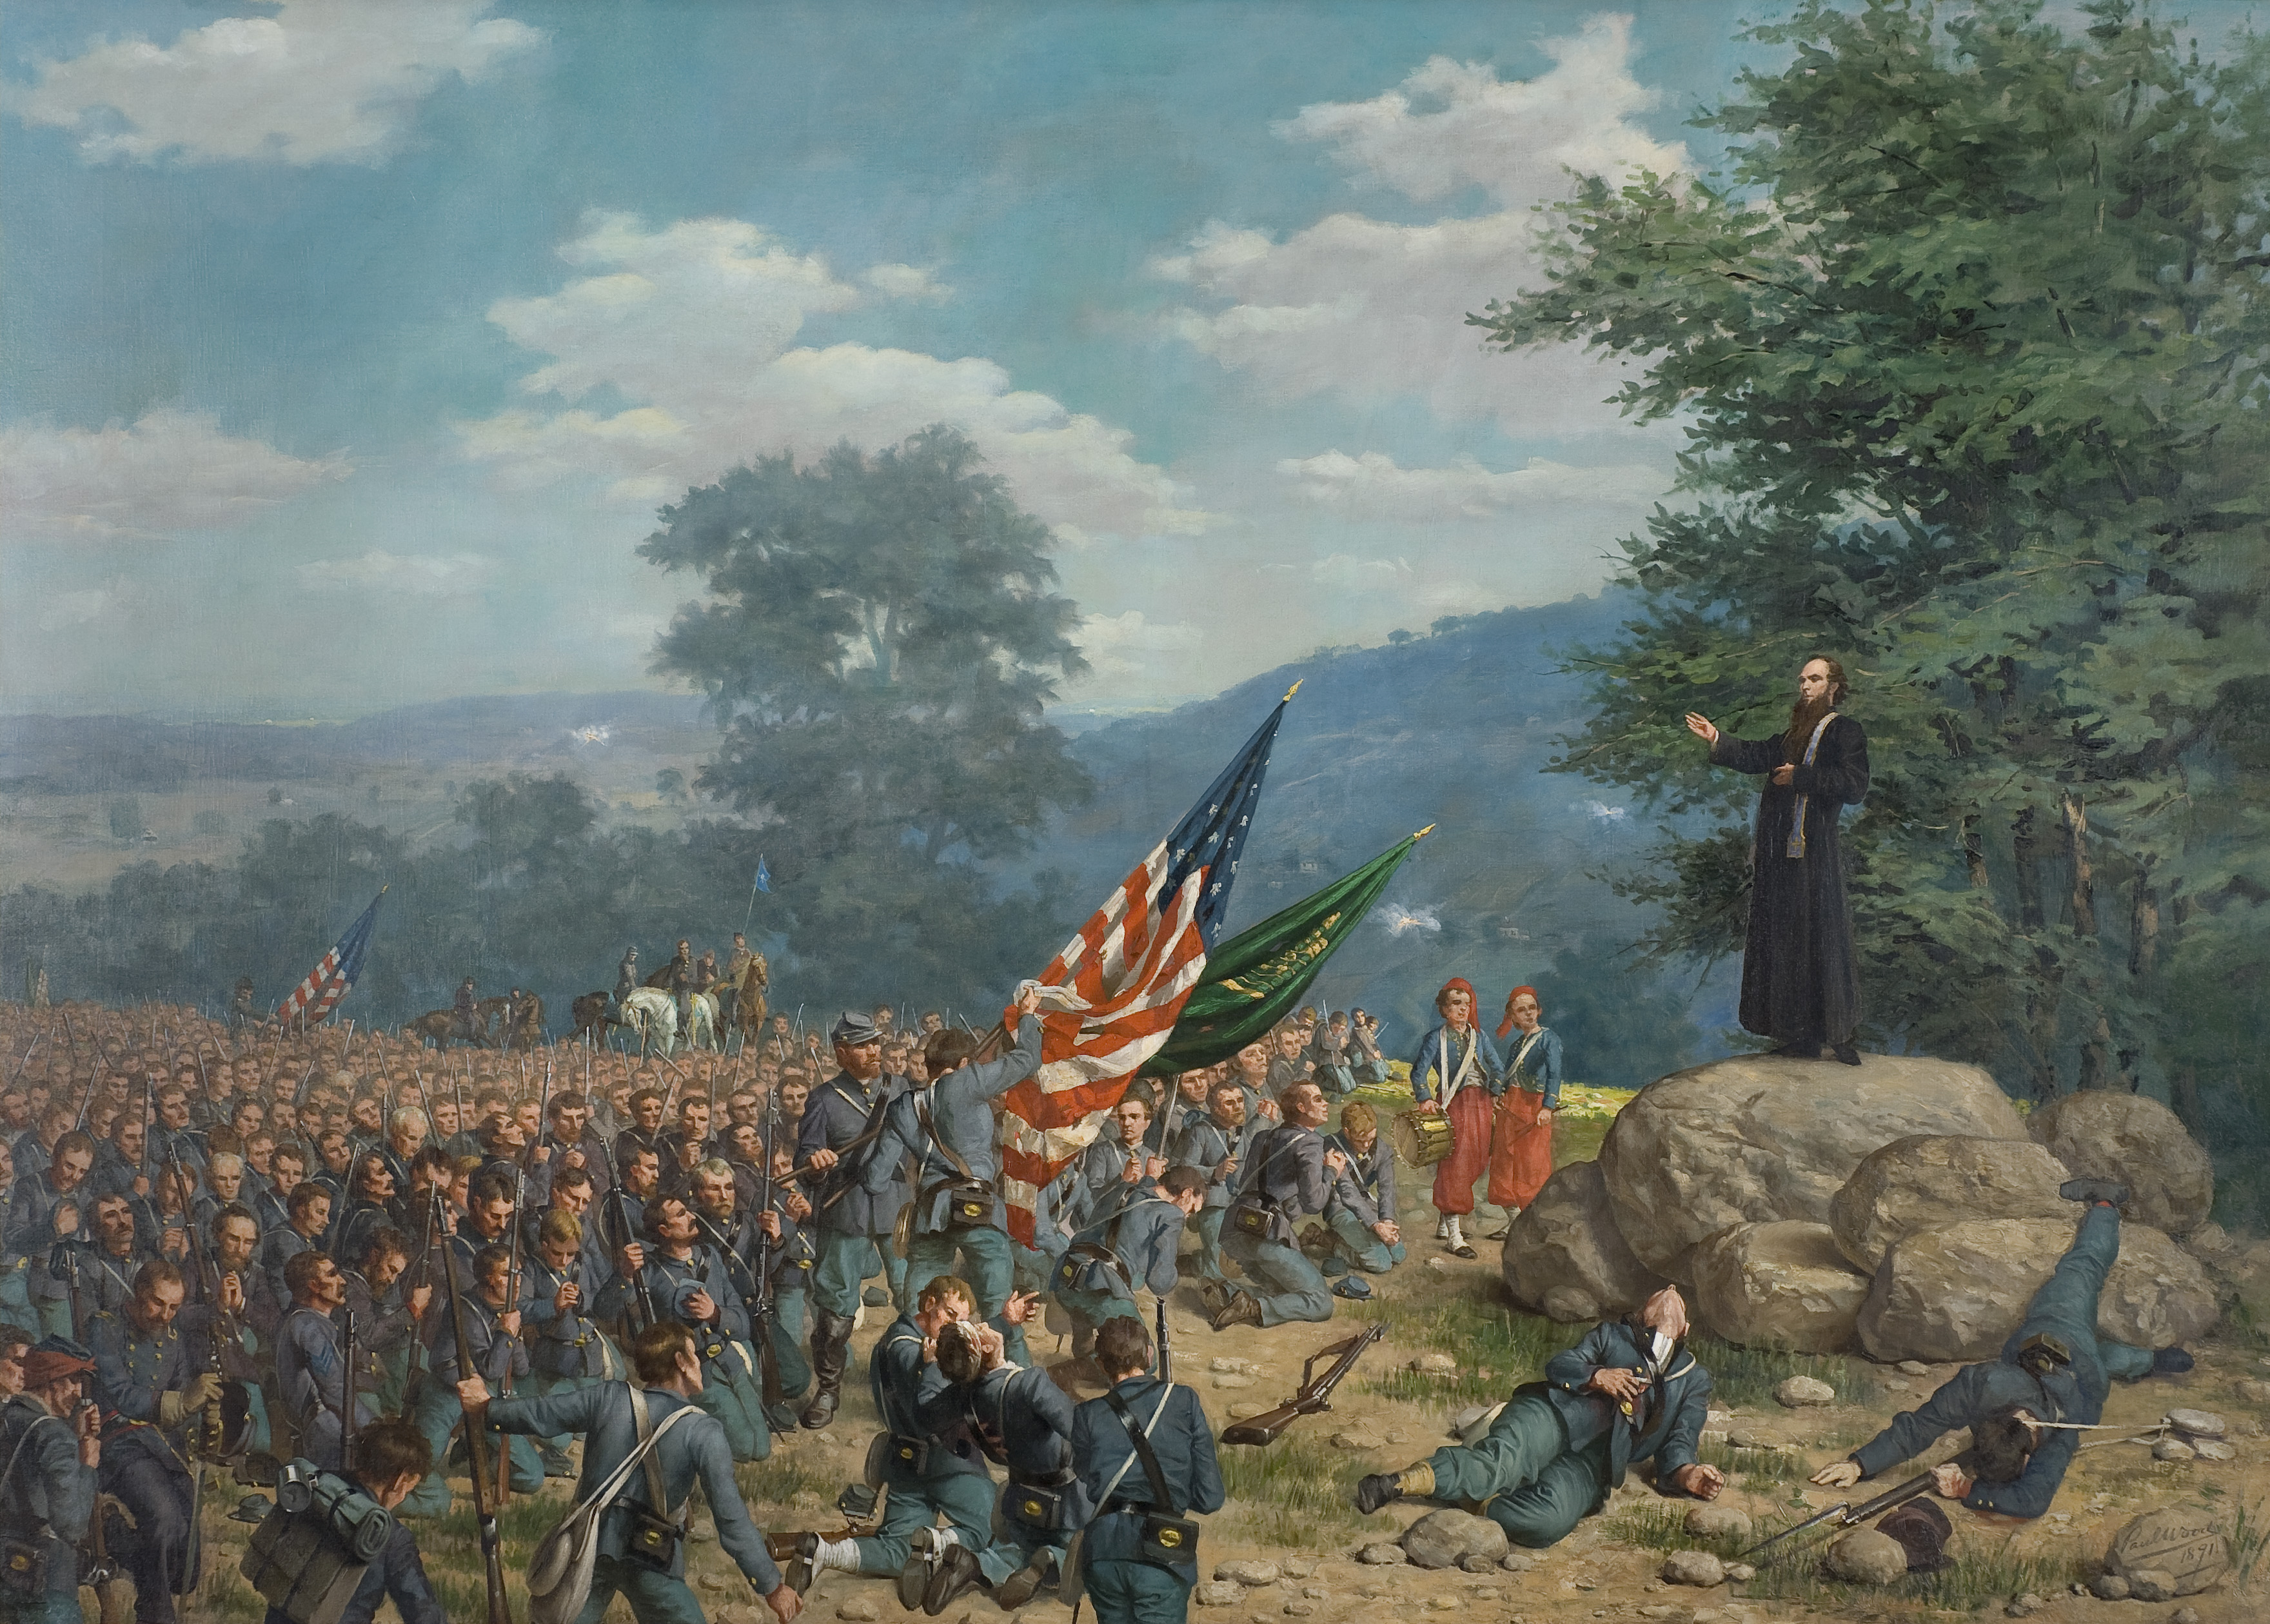 Priest ministering to soldiers on battlefield